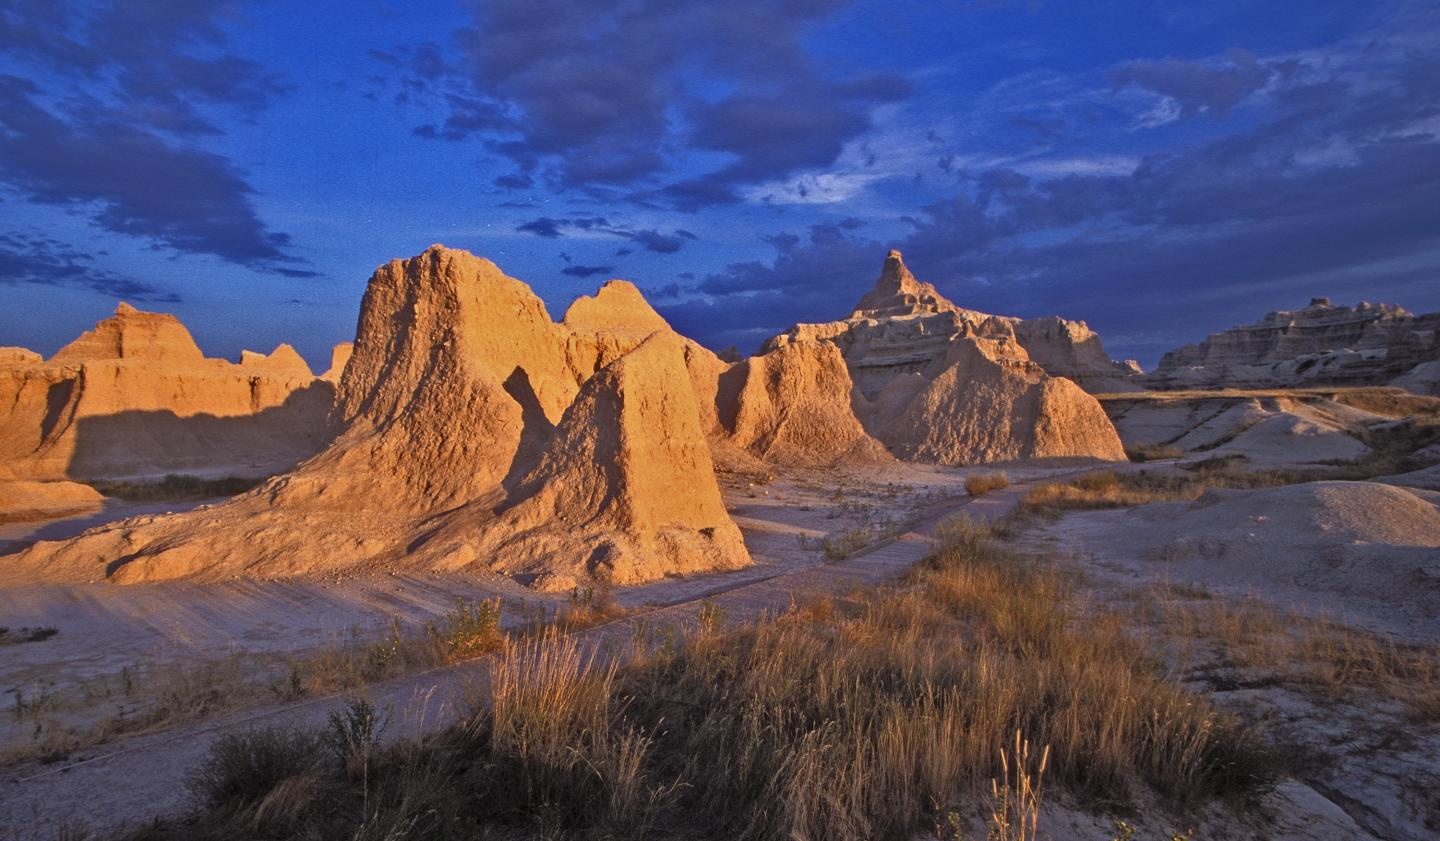 Scenic Drives South Dakota Road Trip Planner with Stops